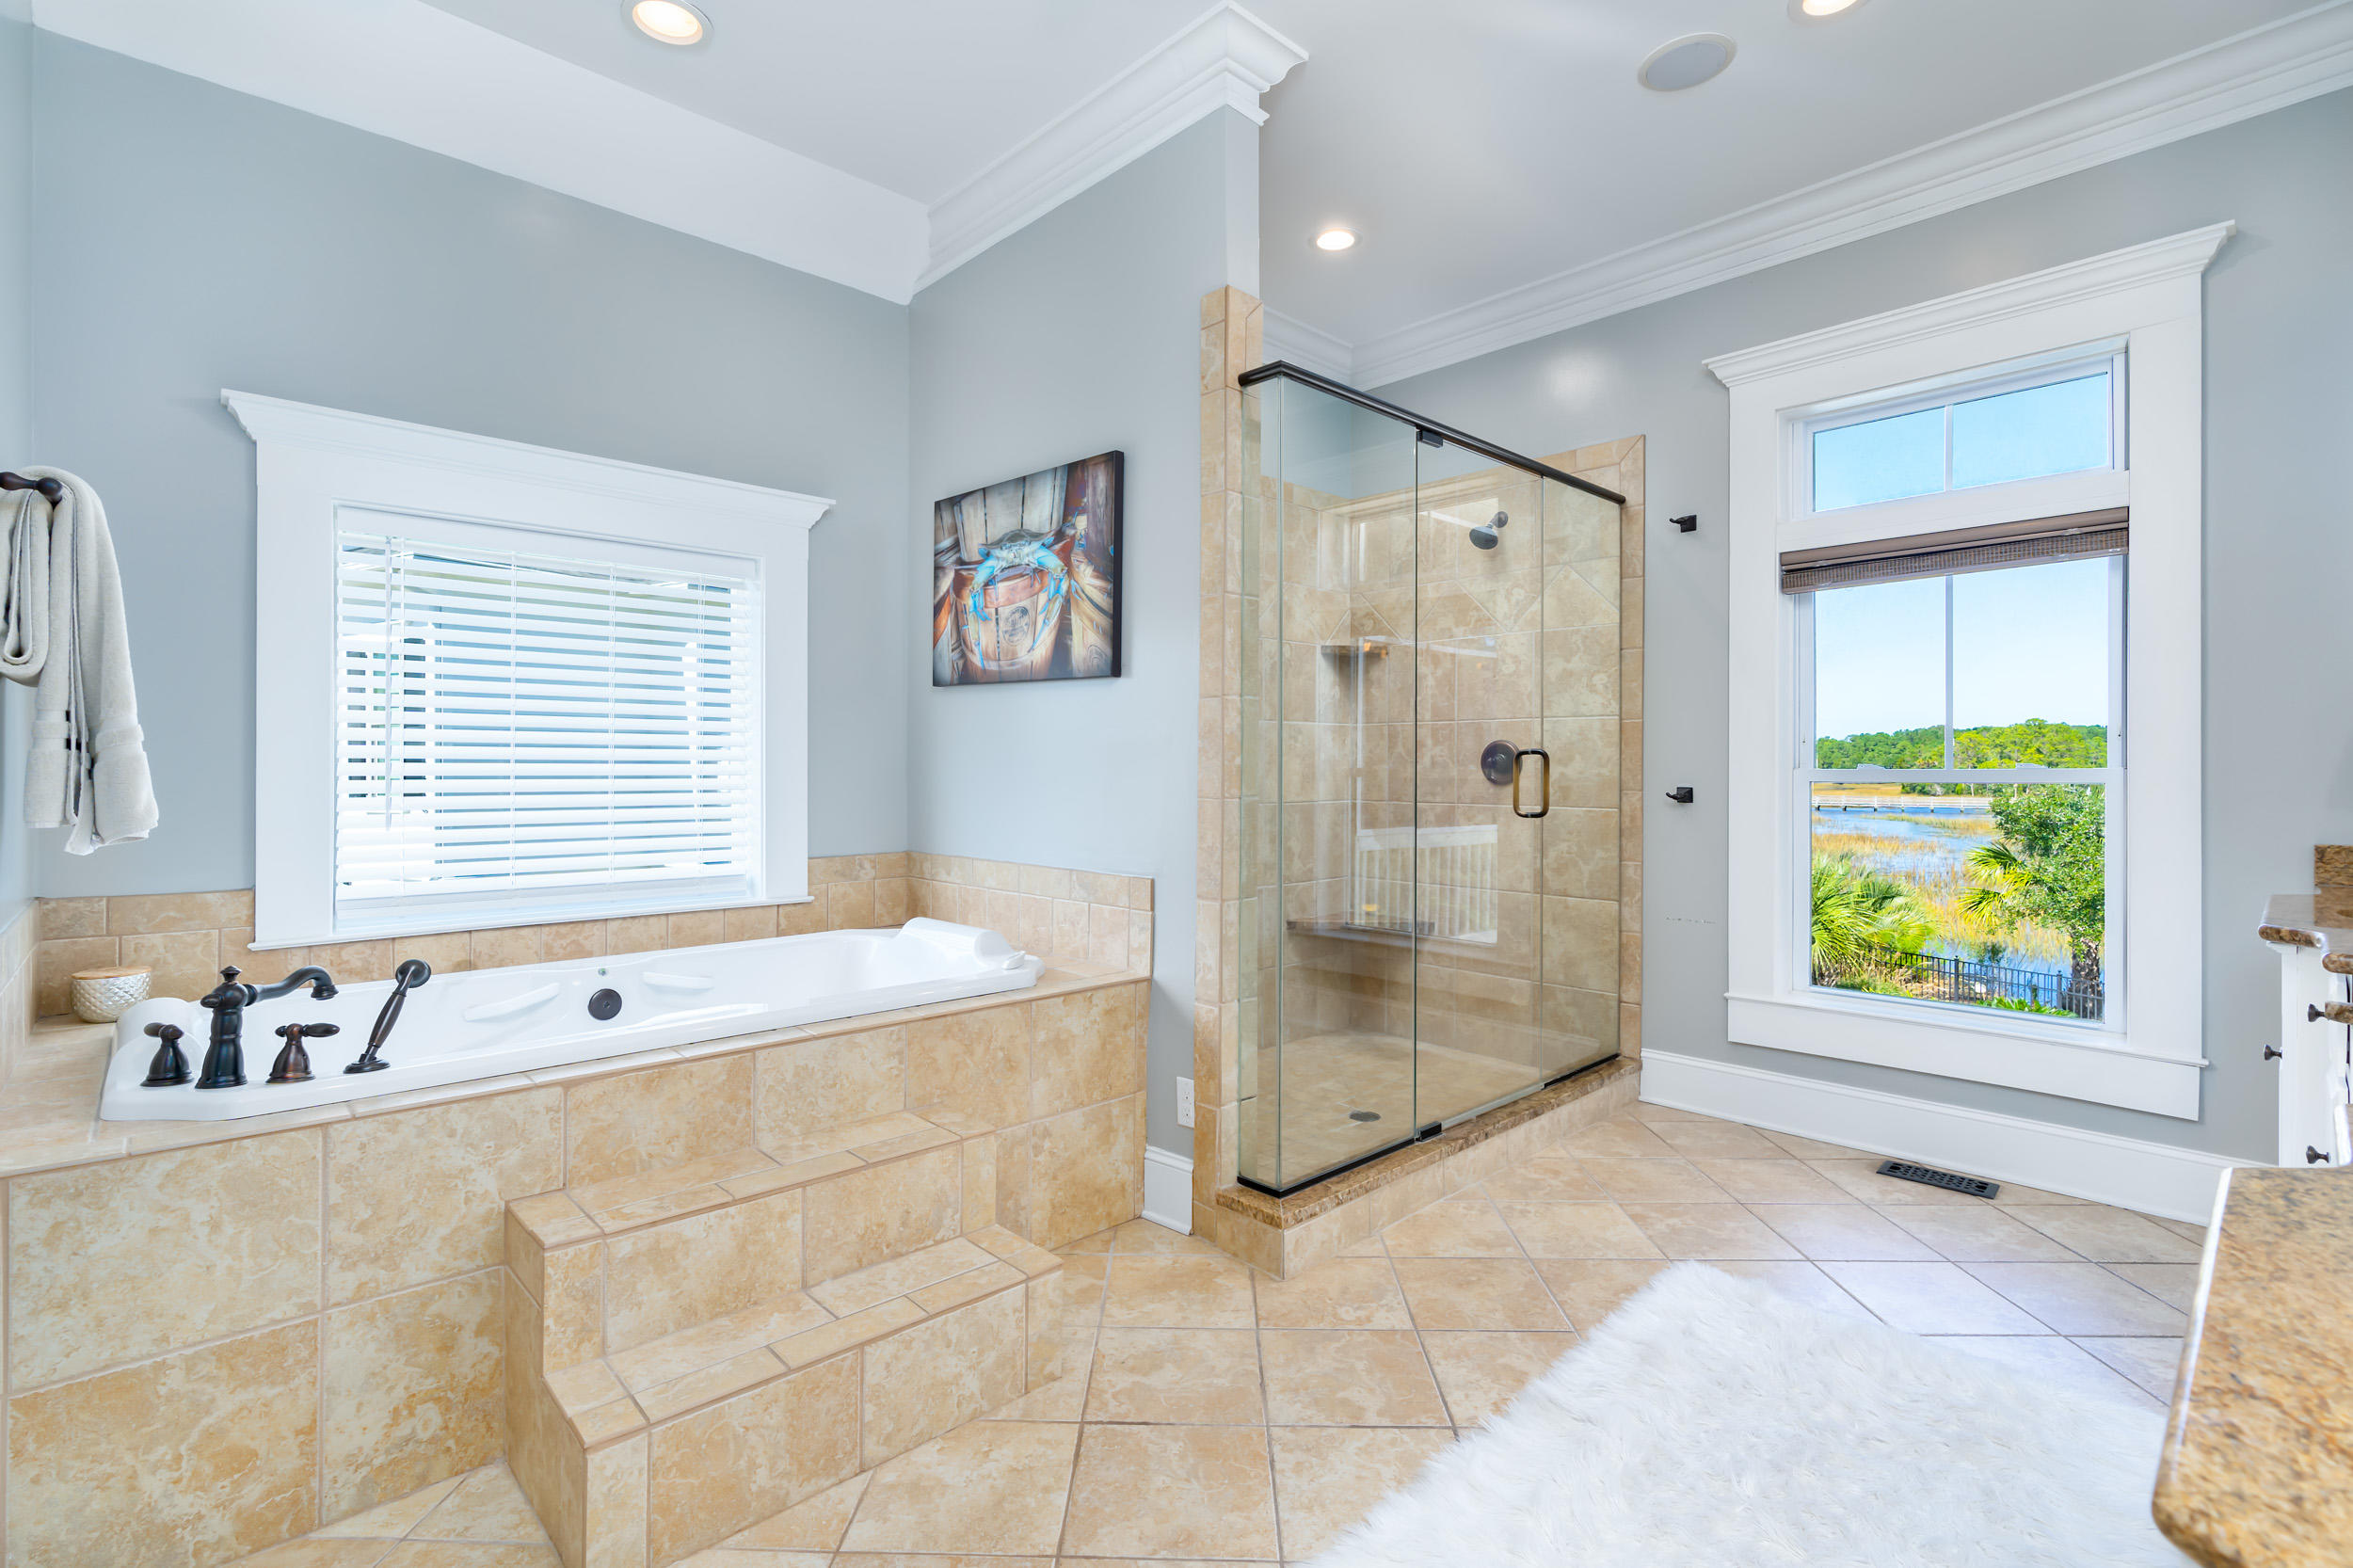 Rivertowne On The Wando Homes For Sale - 2268 Hartfords Bluff, Mount Pleasant, SC - 51